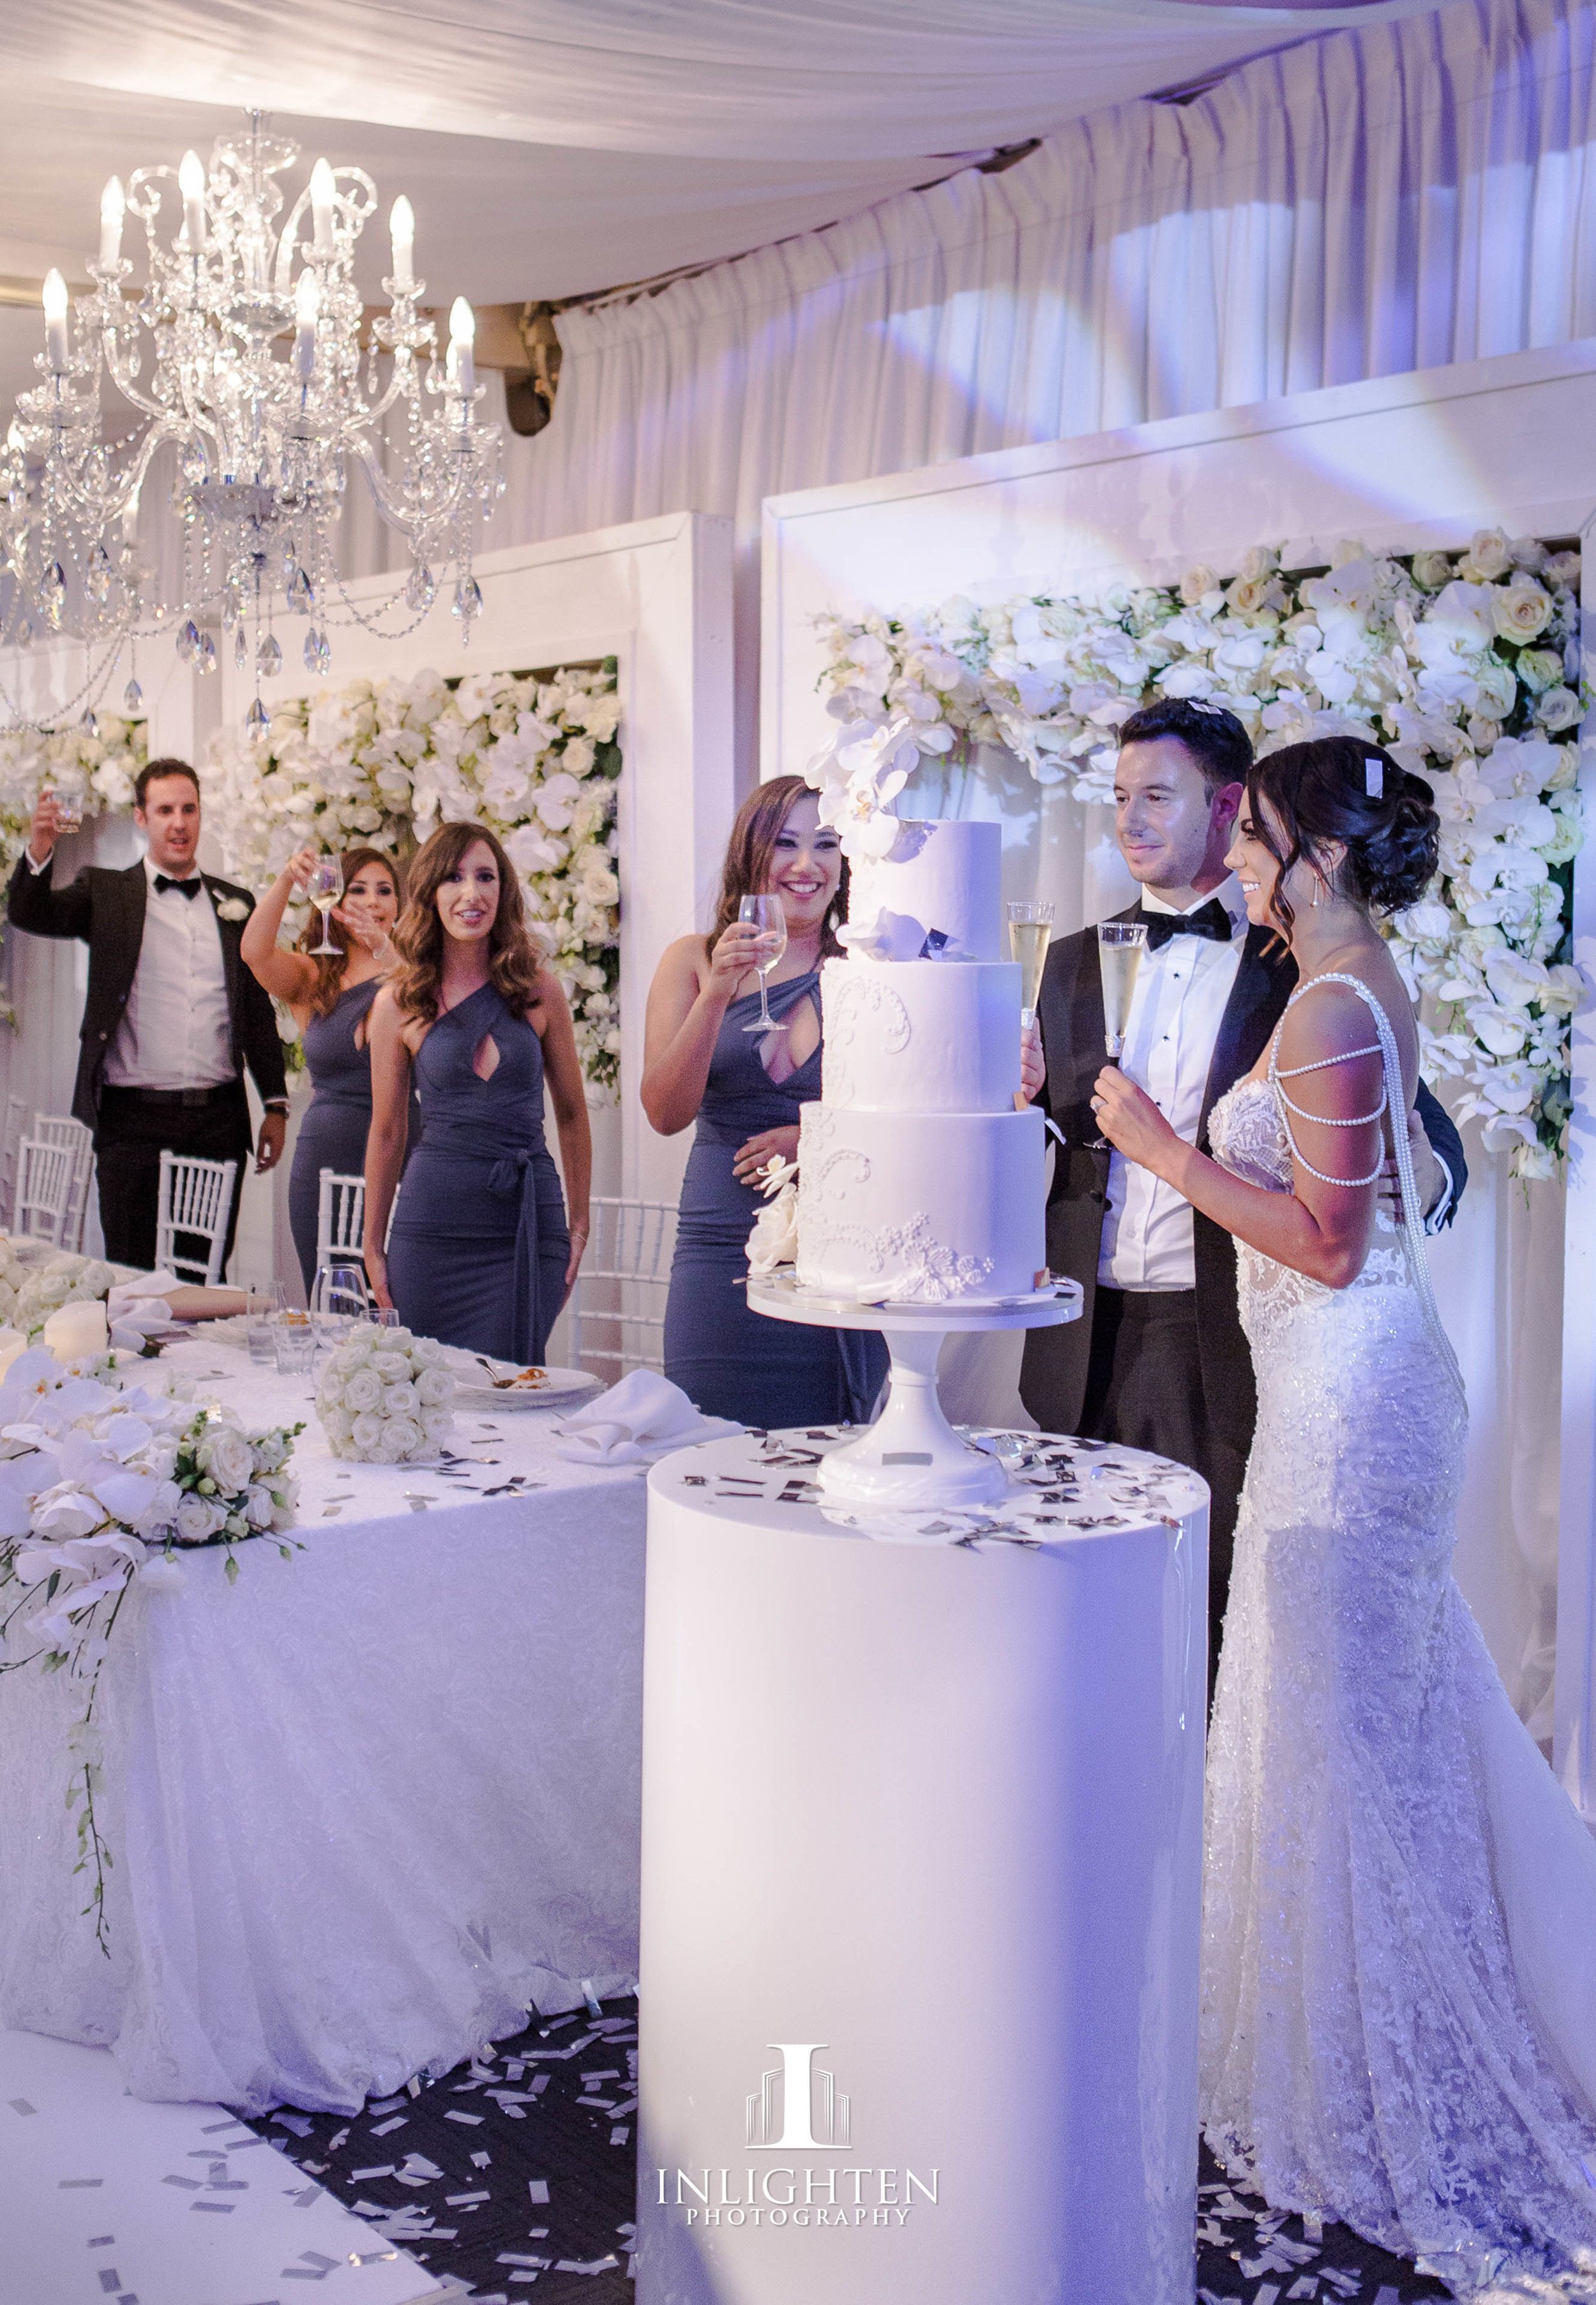 27 Kayla & Joe - Opera Point Marquee_Bridal table long low_custom built frames_fresh flowers_LED pillar candles_Sofia chandelier_white Windsor luxury linen_white round cake table_ceiling draping.jpg